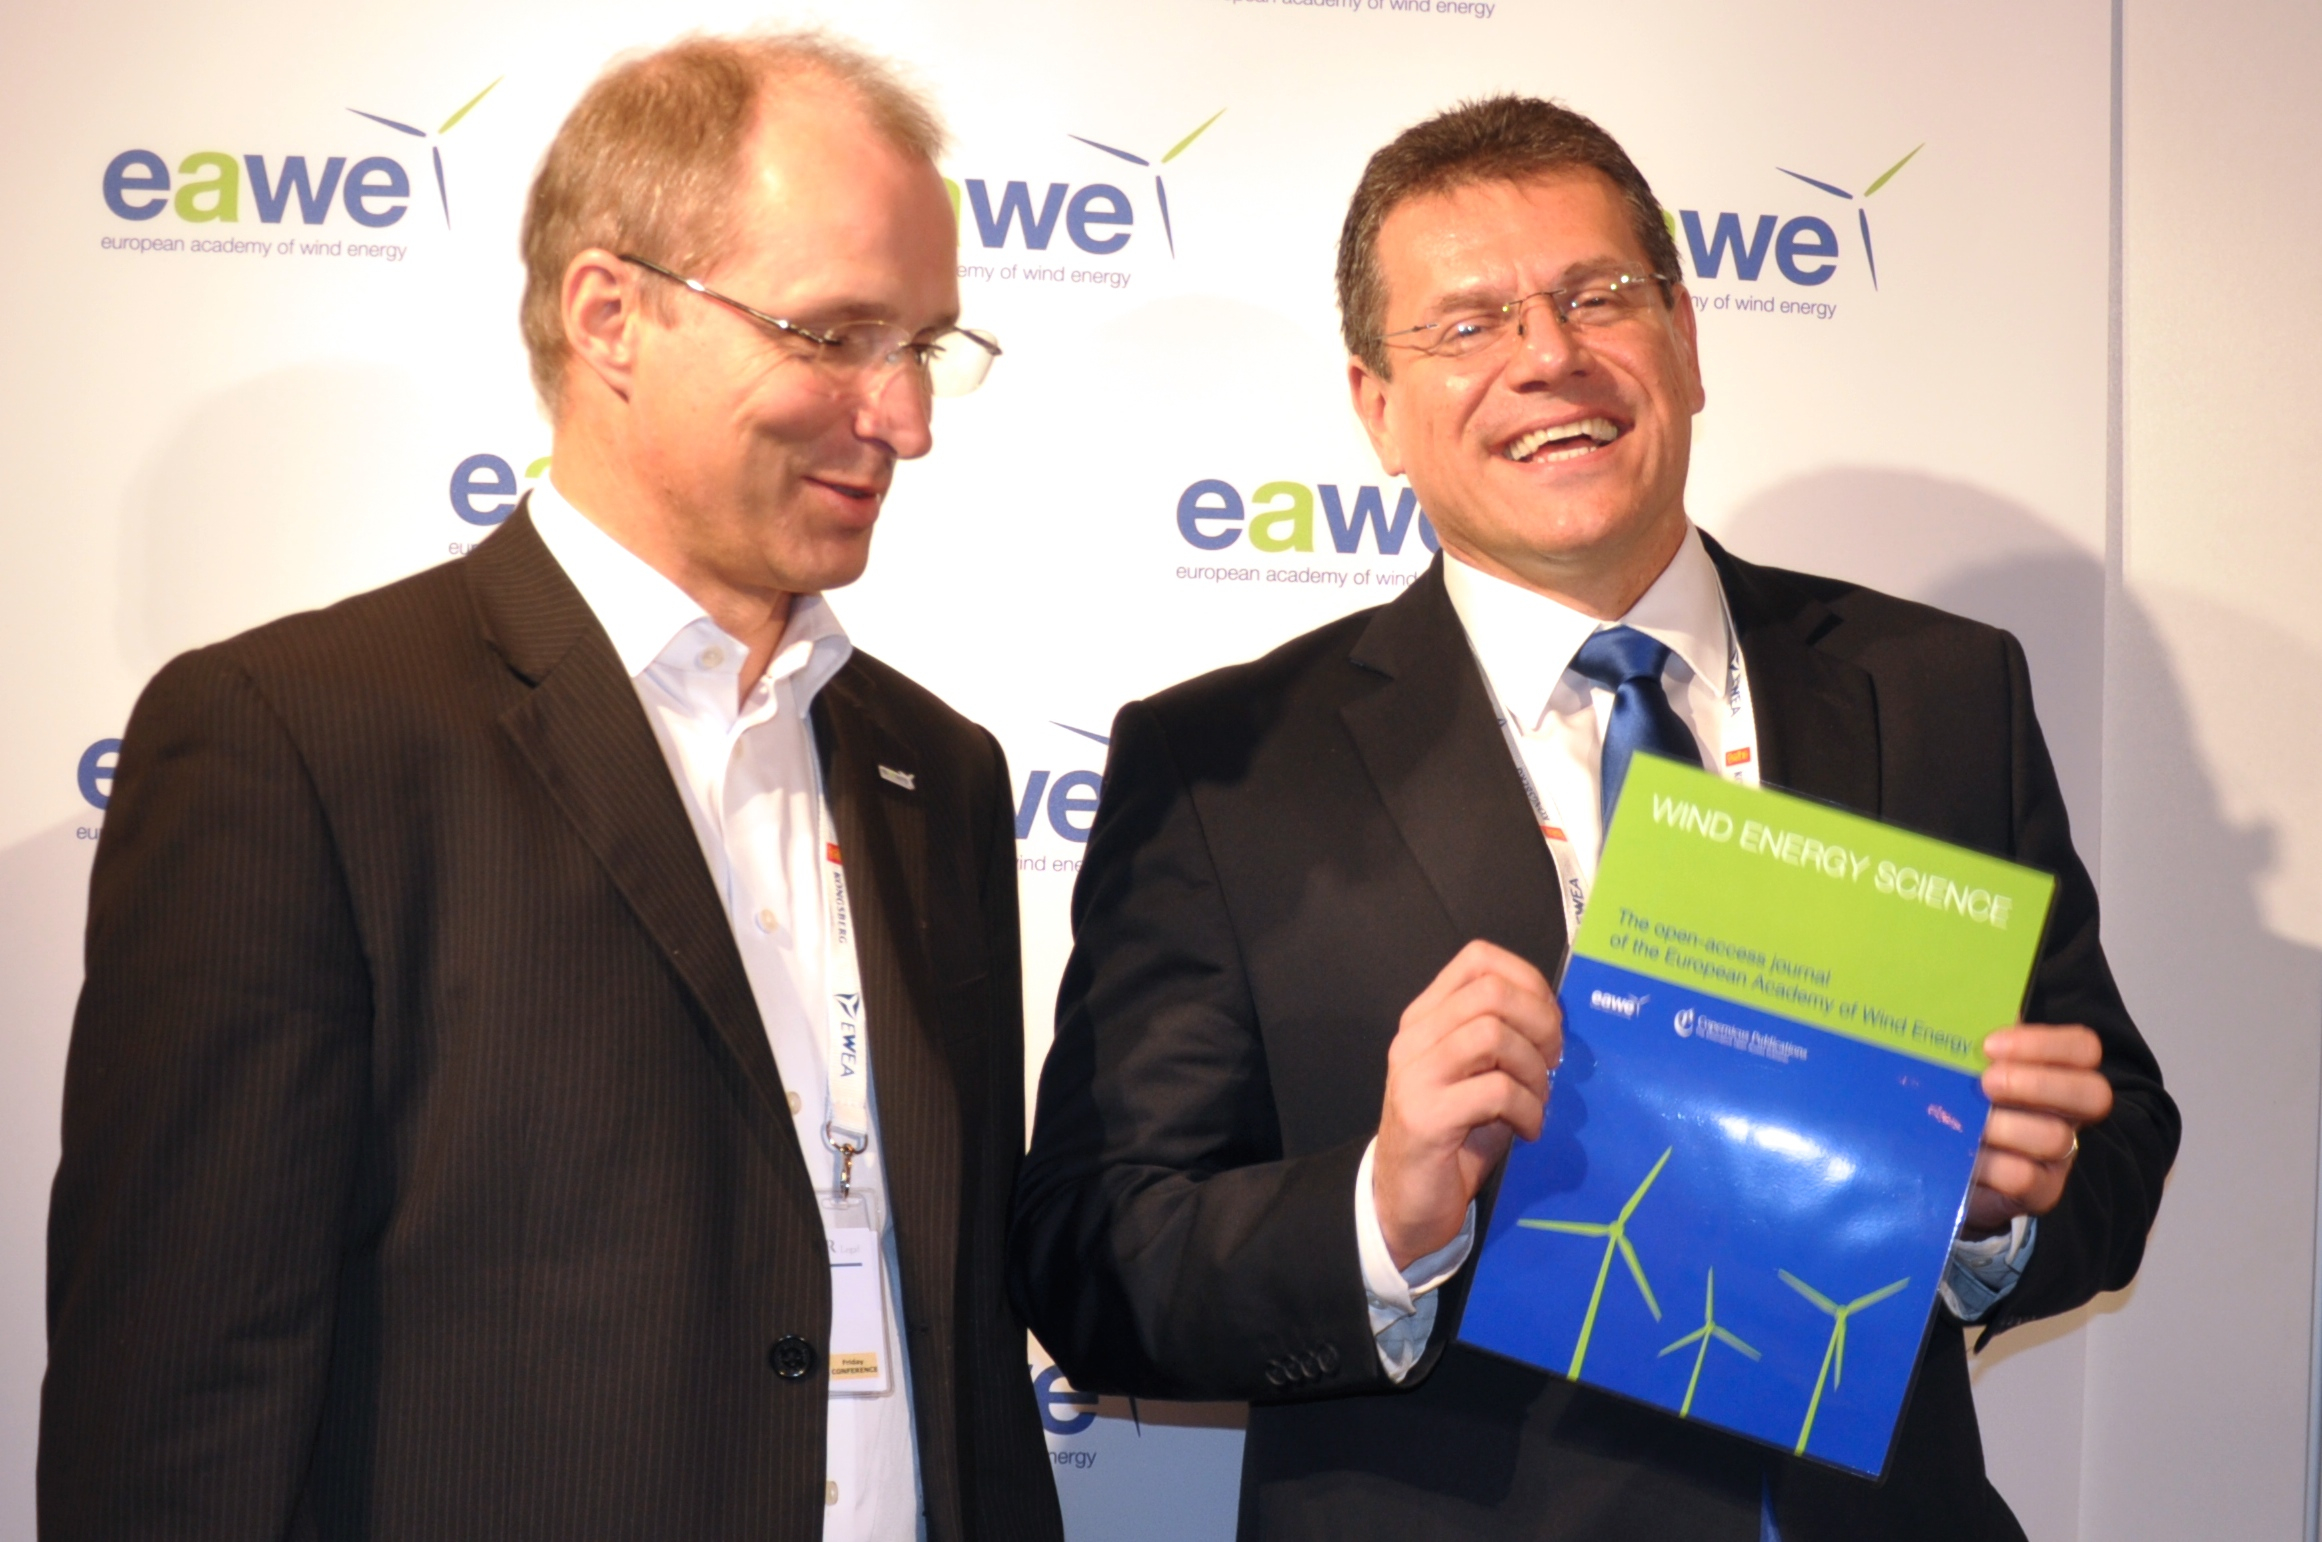 EWEA 2015 event in Paris.